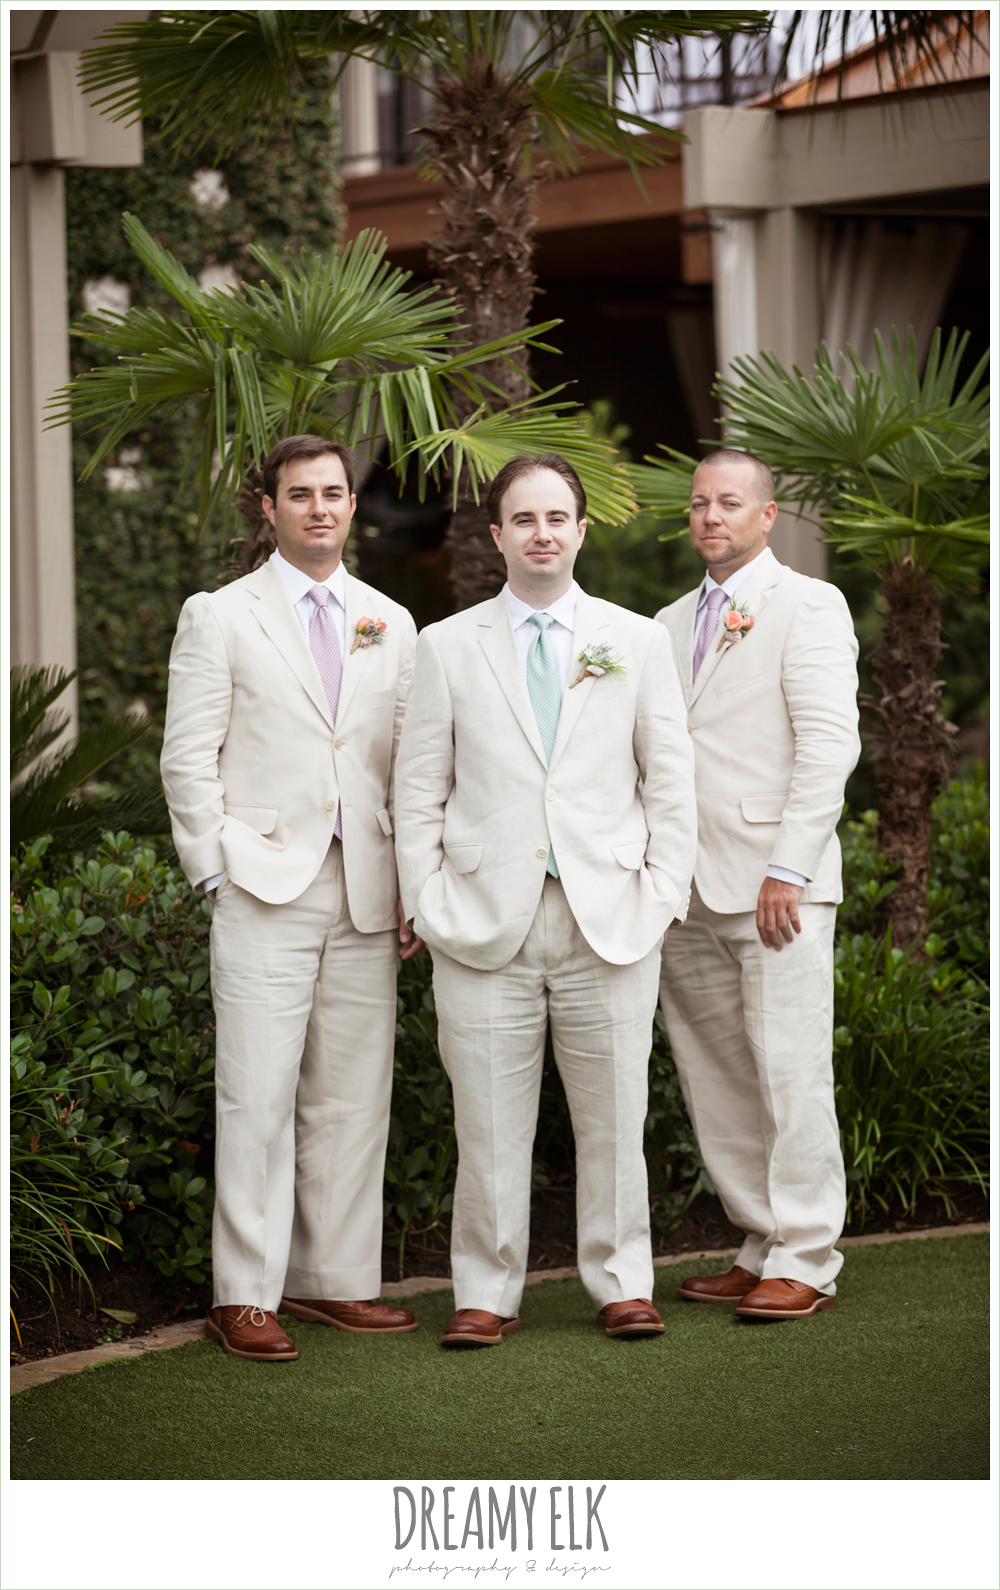 groom and groomsmen in linen suits, nautical themed wedding, horseshoe bay resort photo {dreamy elk photography and design}